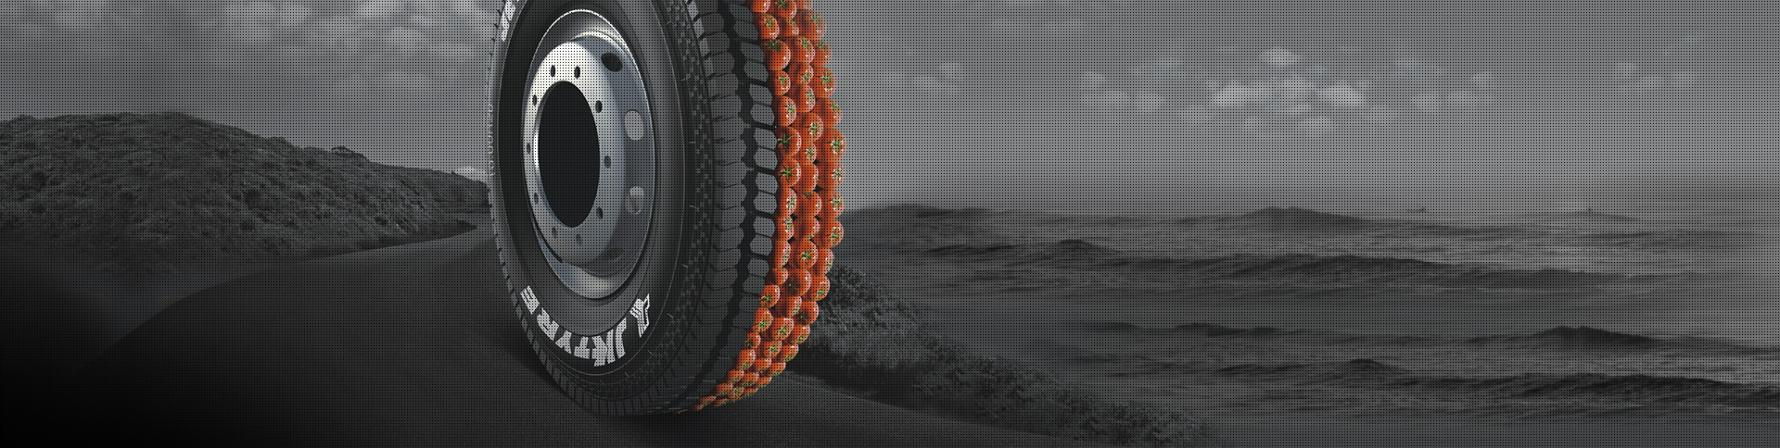 tireclub banner 5